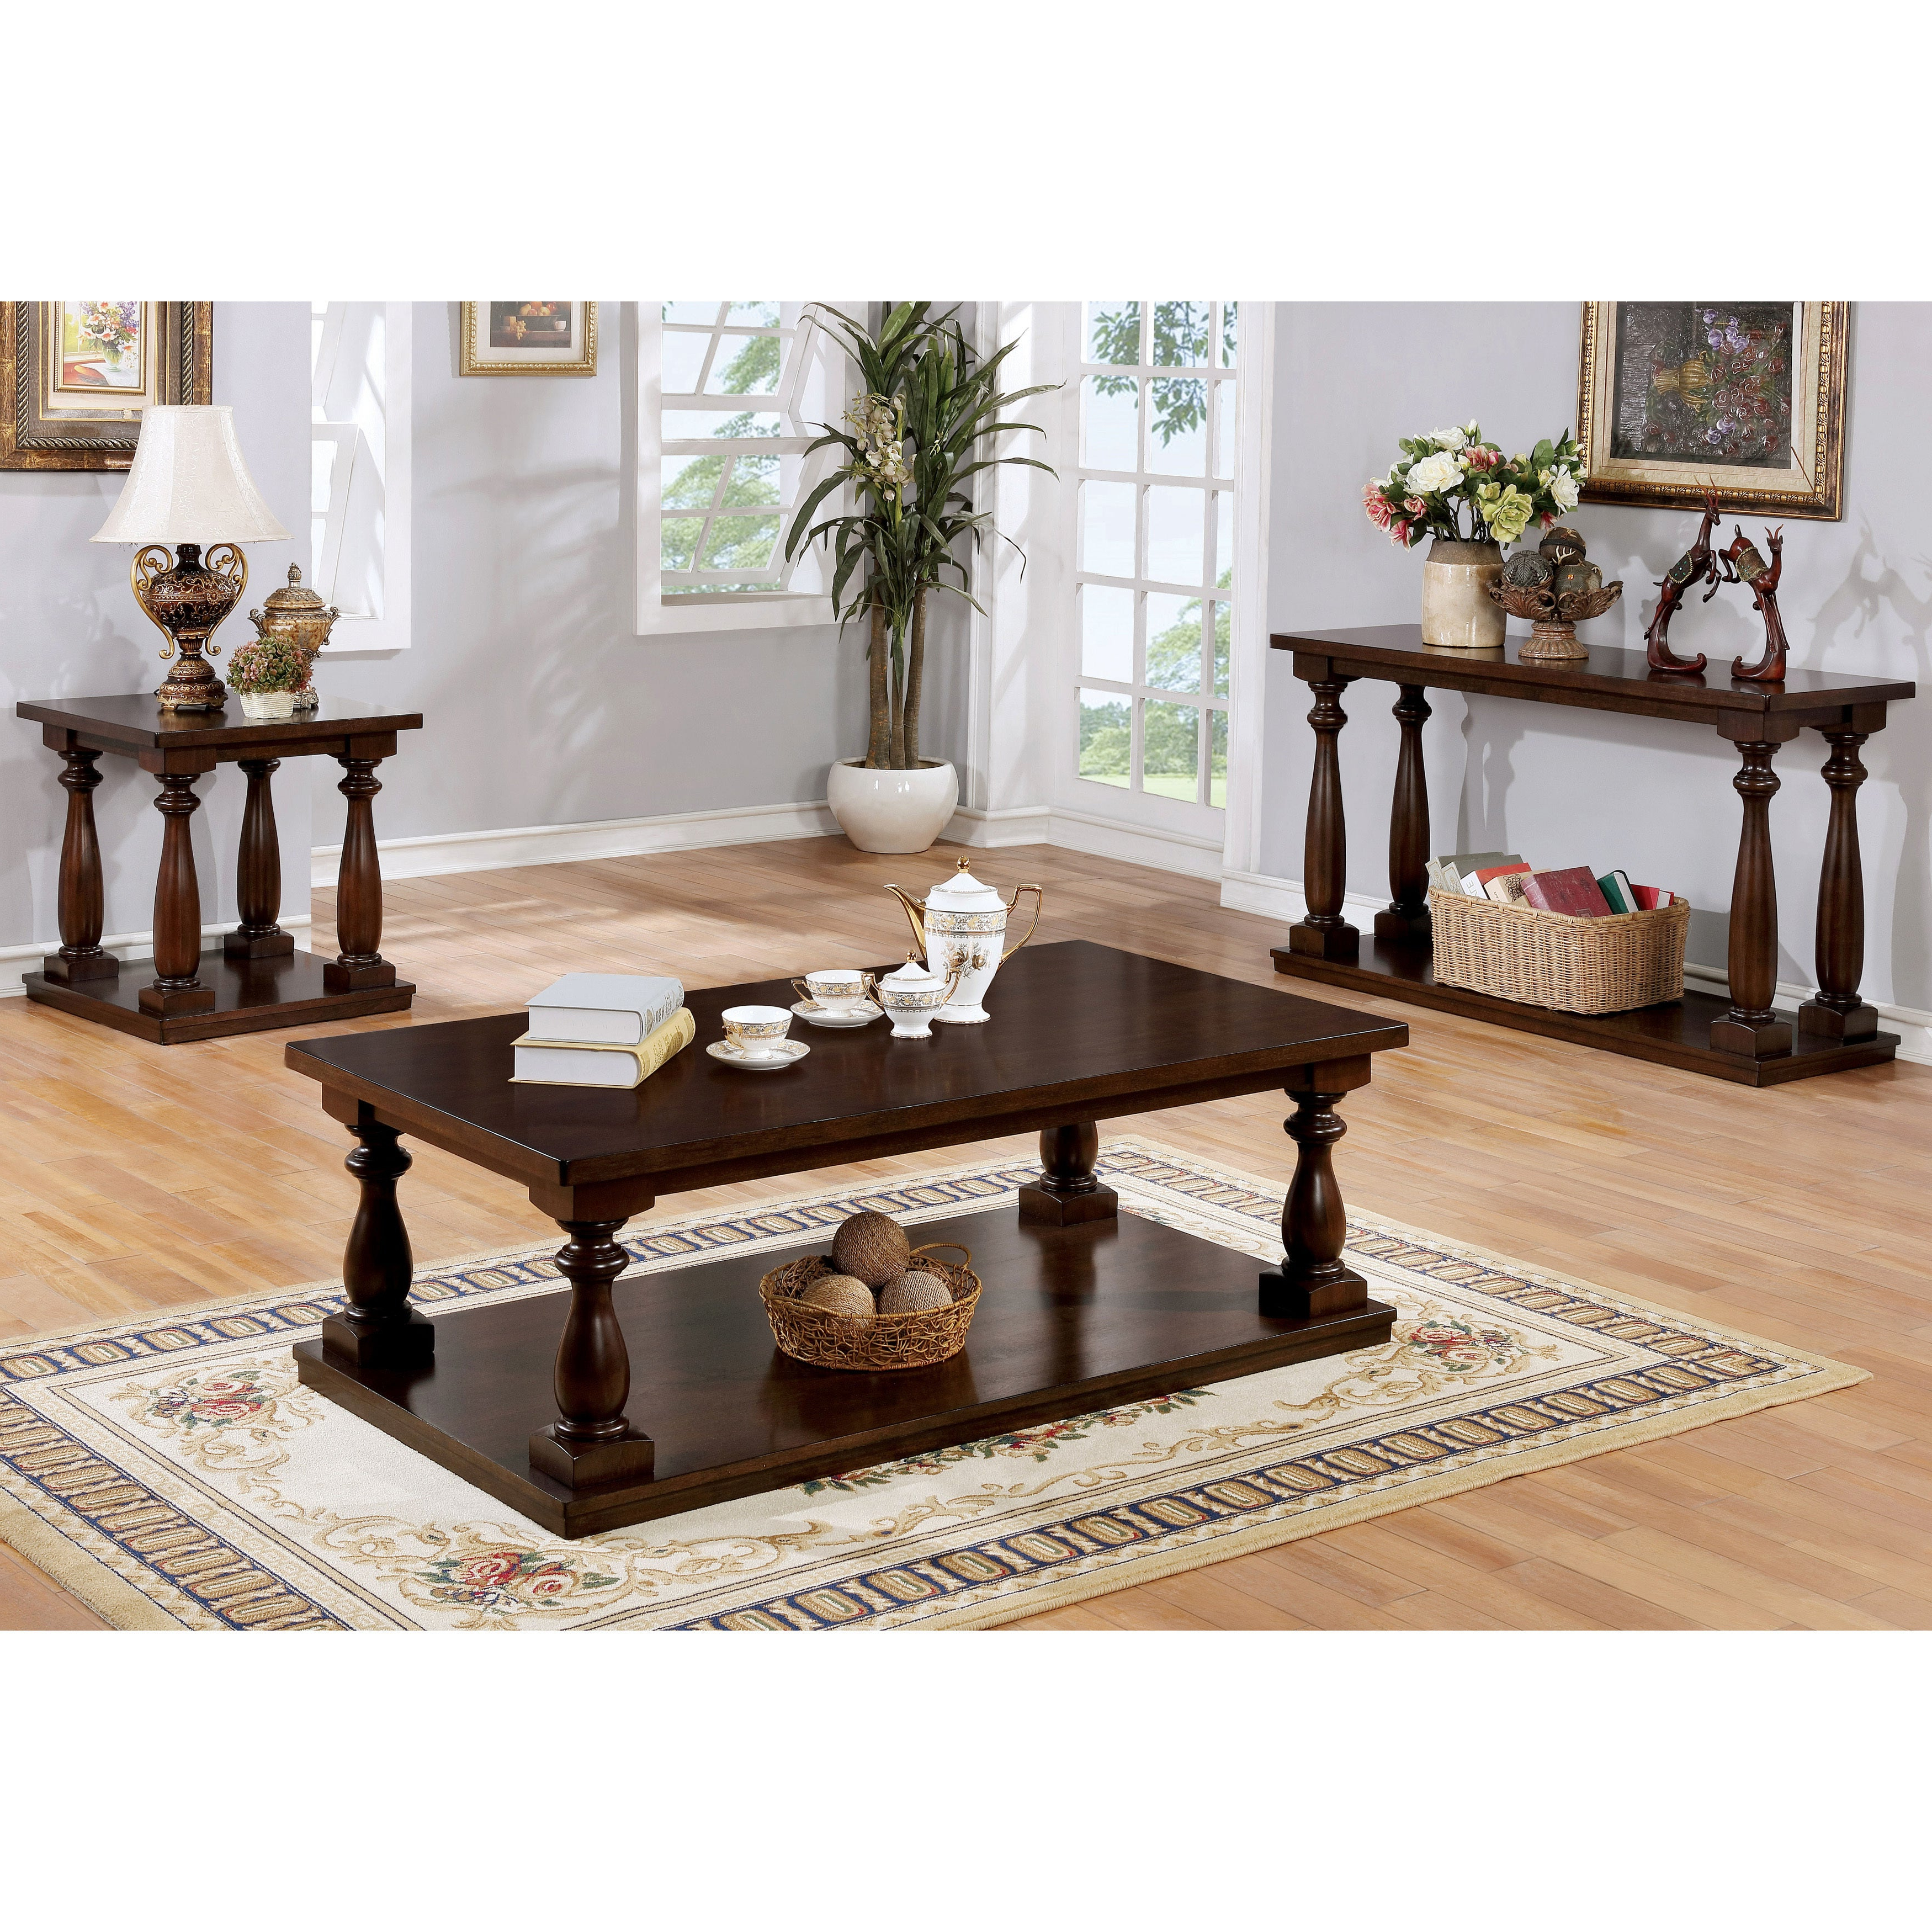 Jessa Rustic Country 54 Inch Coffee Tablefoa Pertaining To Best And Newest Jessa Rustic Country 54 Inch Coffee Tables (Gallery 4 of 20)